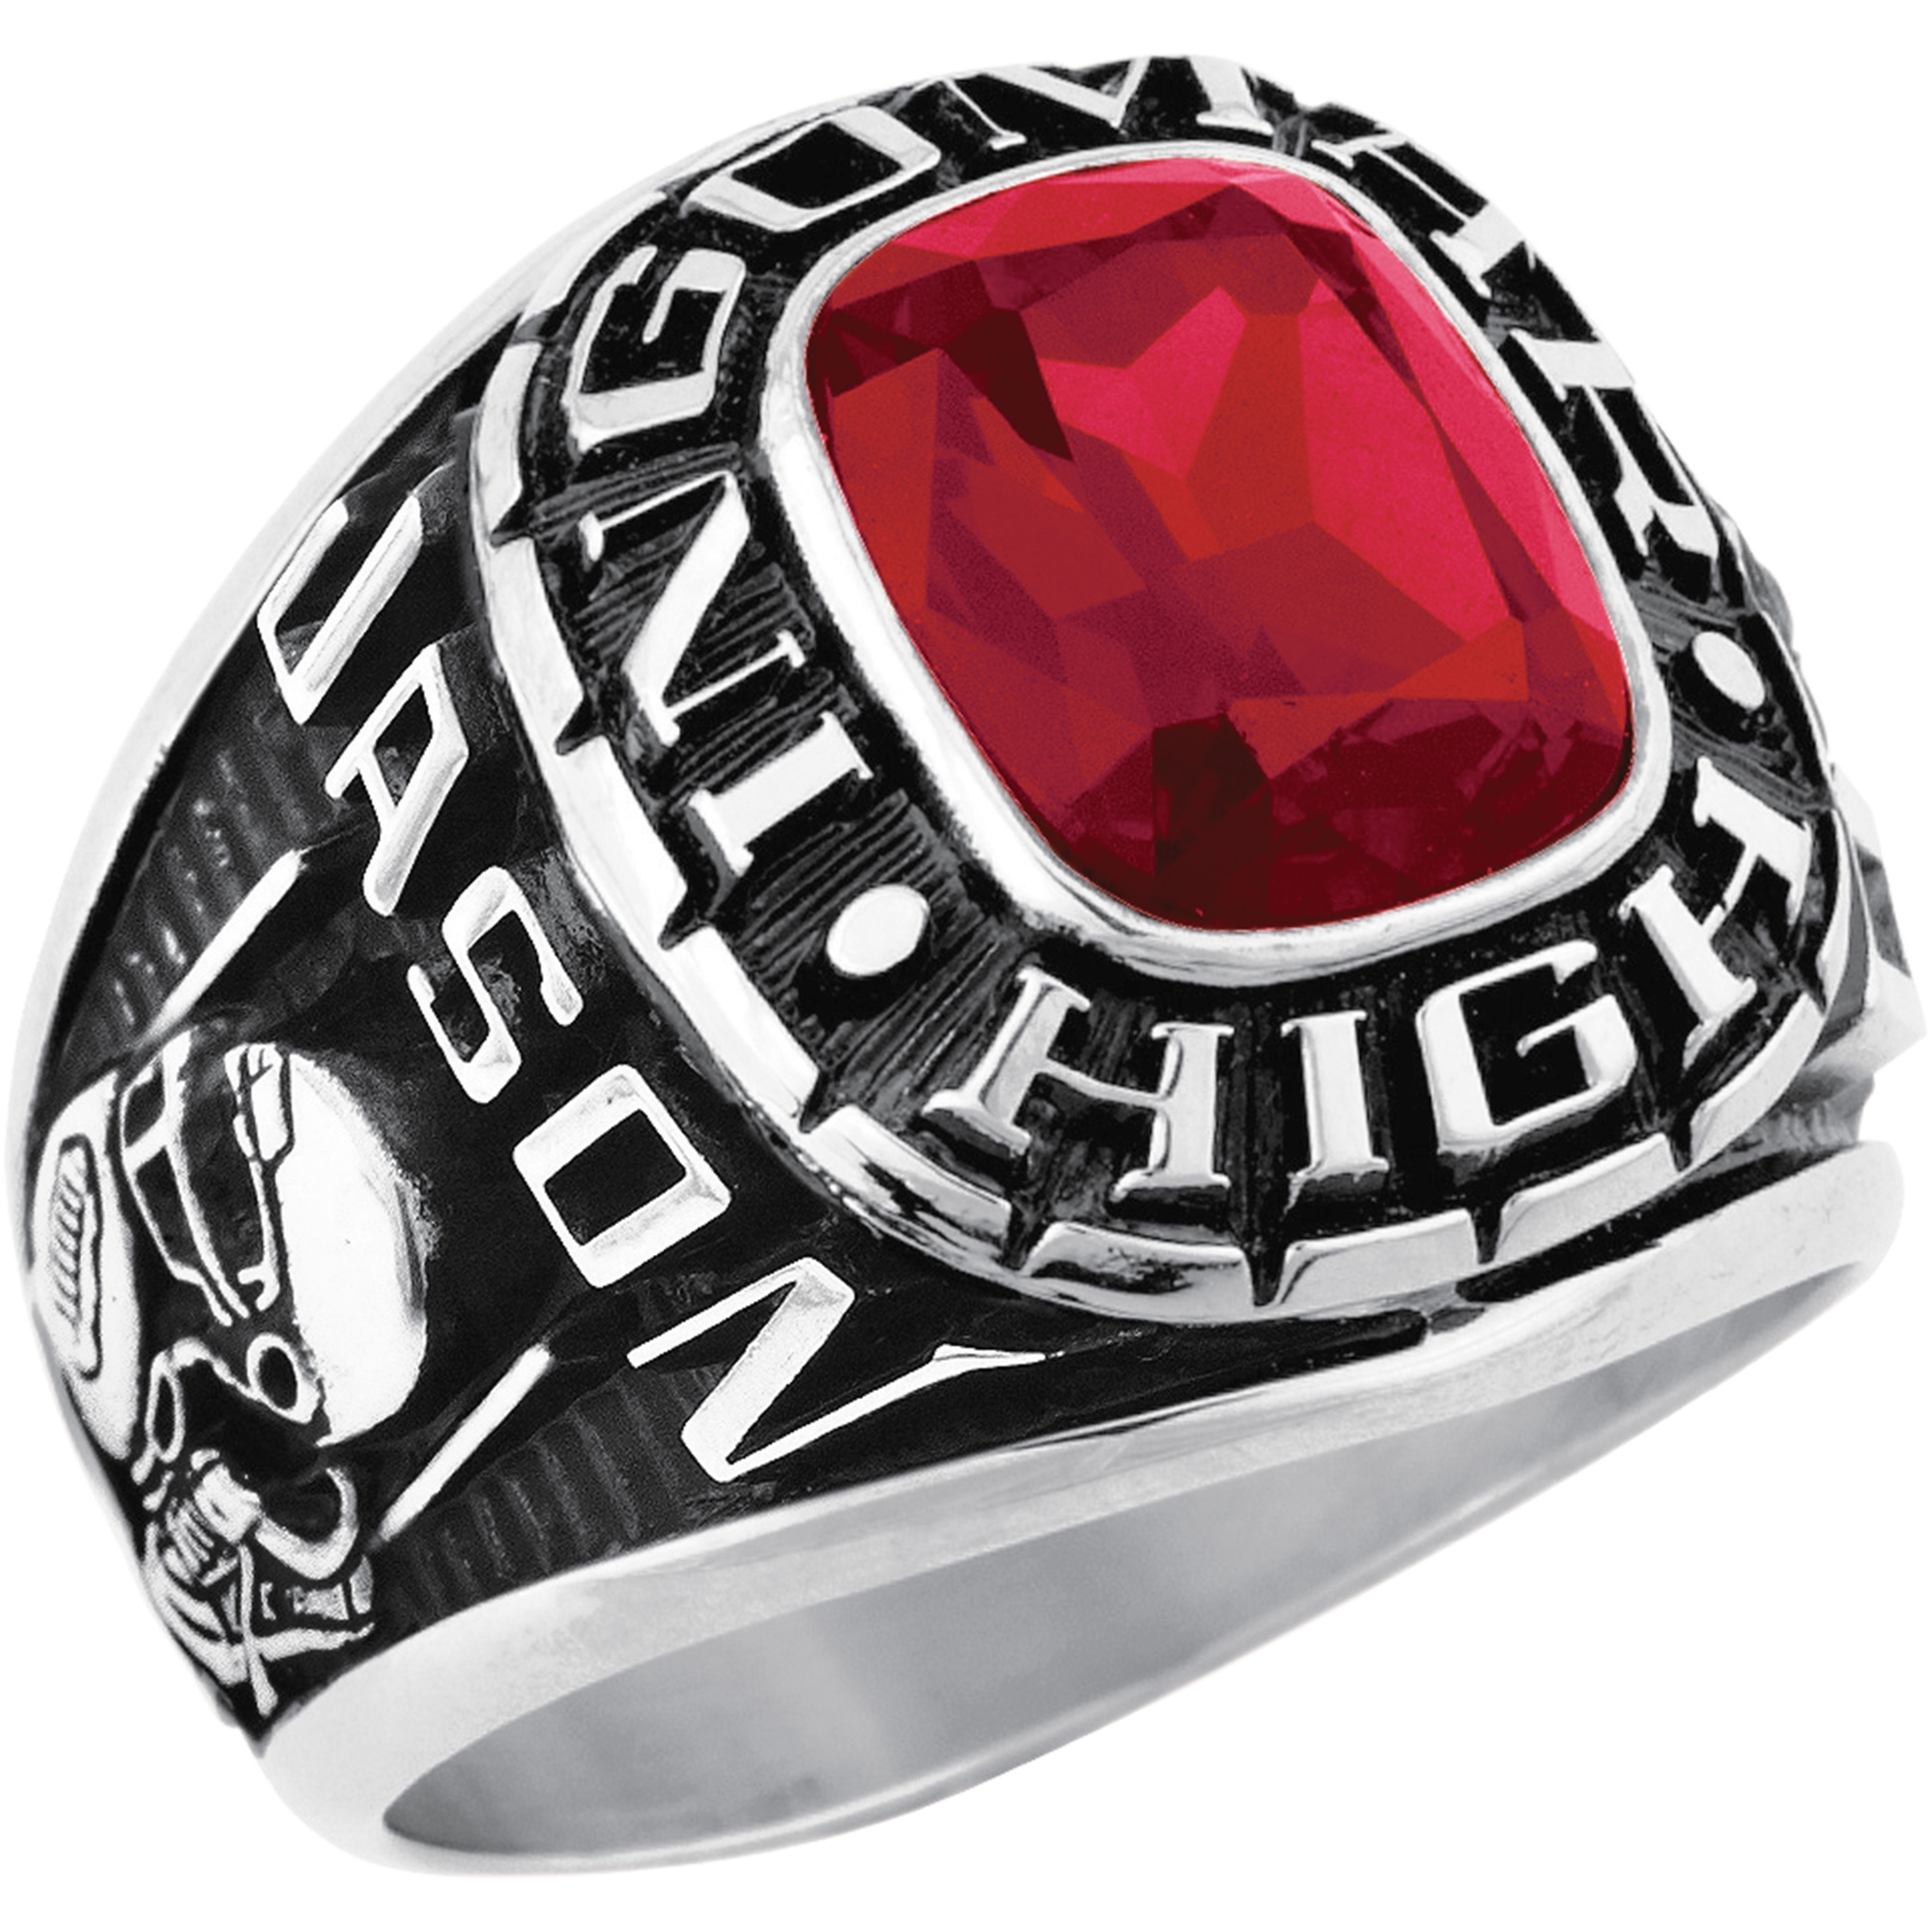 Keepsake Men's Square Class Ring